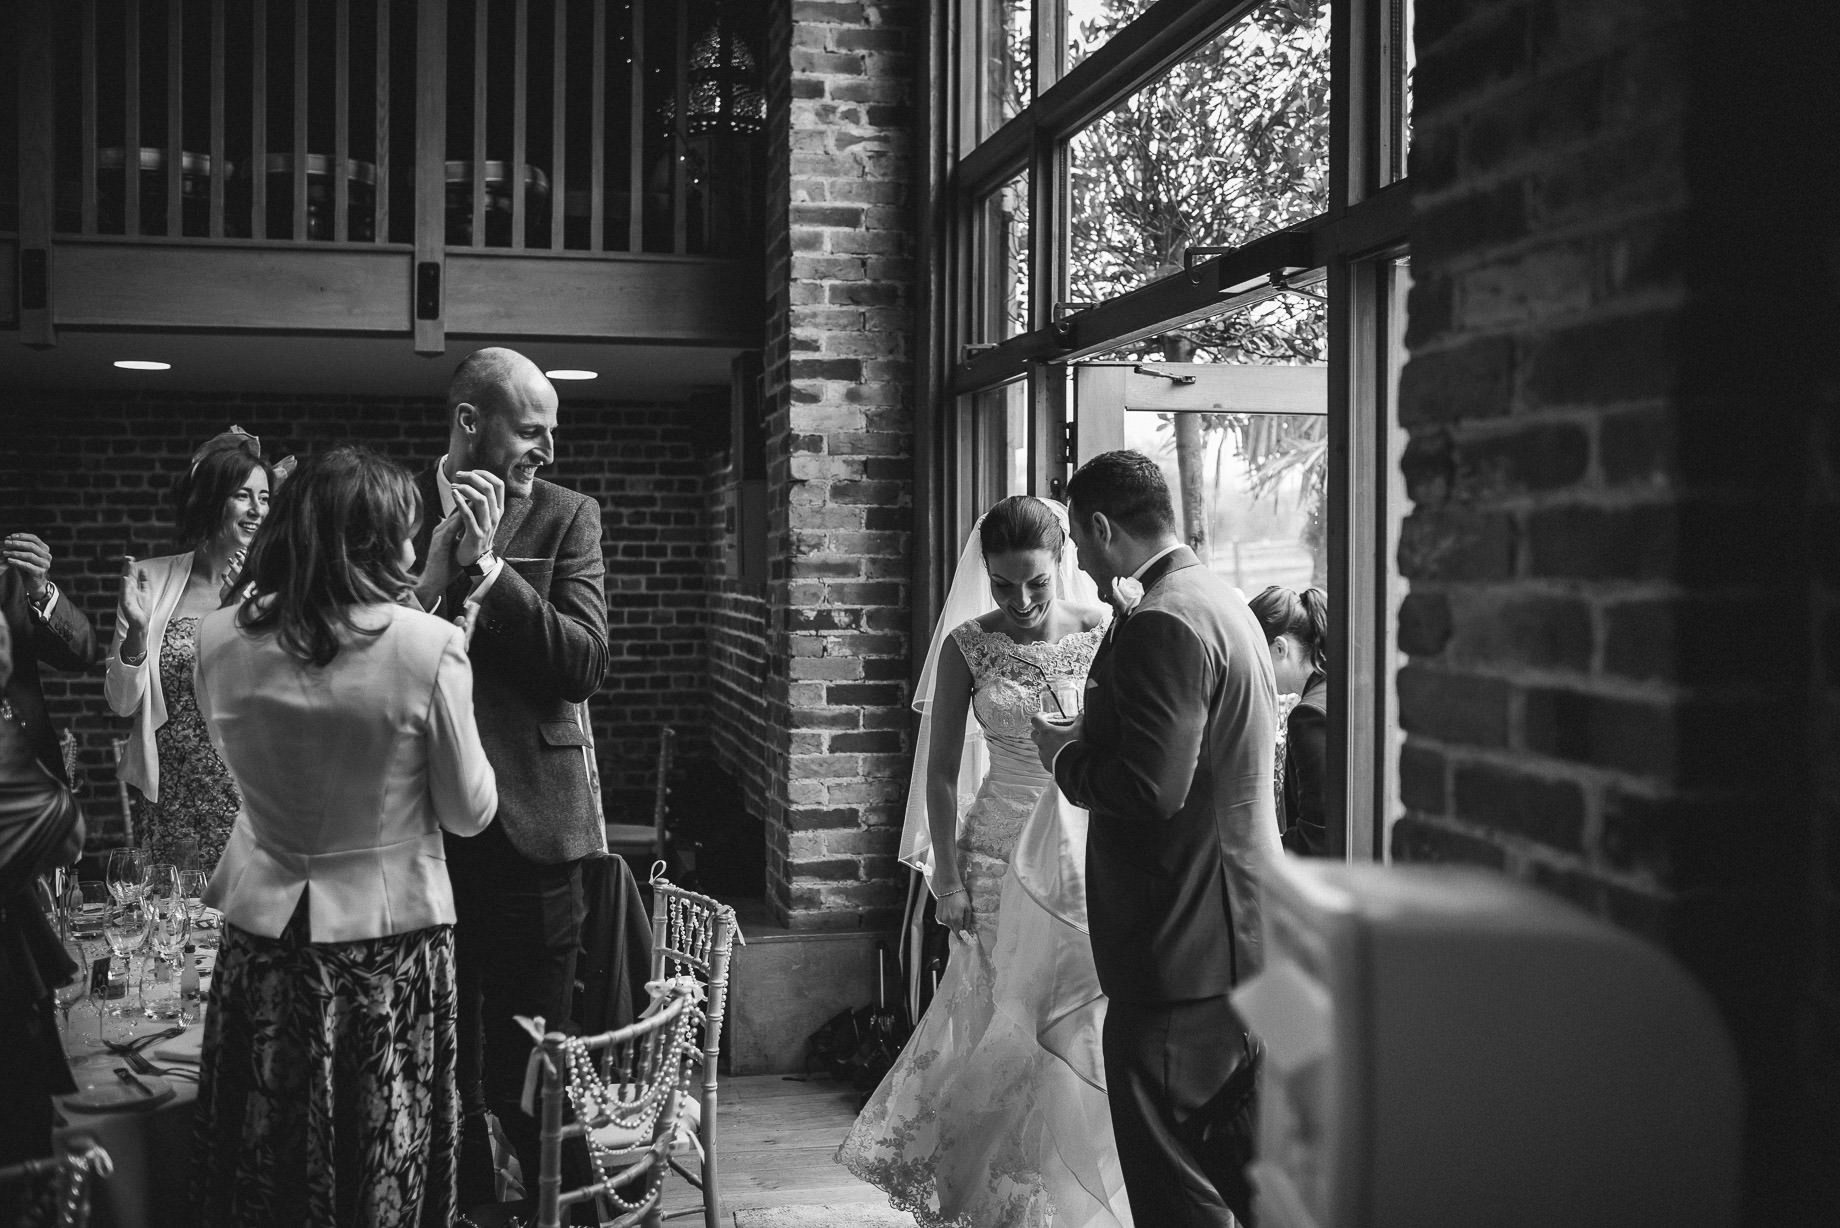 Best wedding photography by Guy Collier - Sheri and Chris (84 of 121)